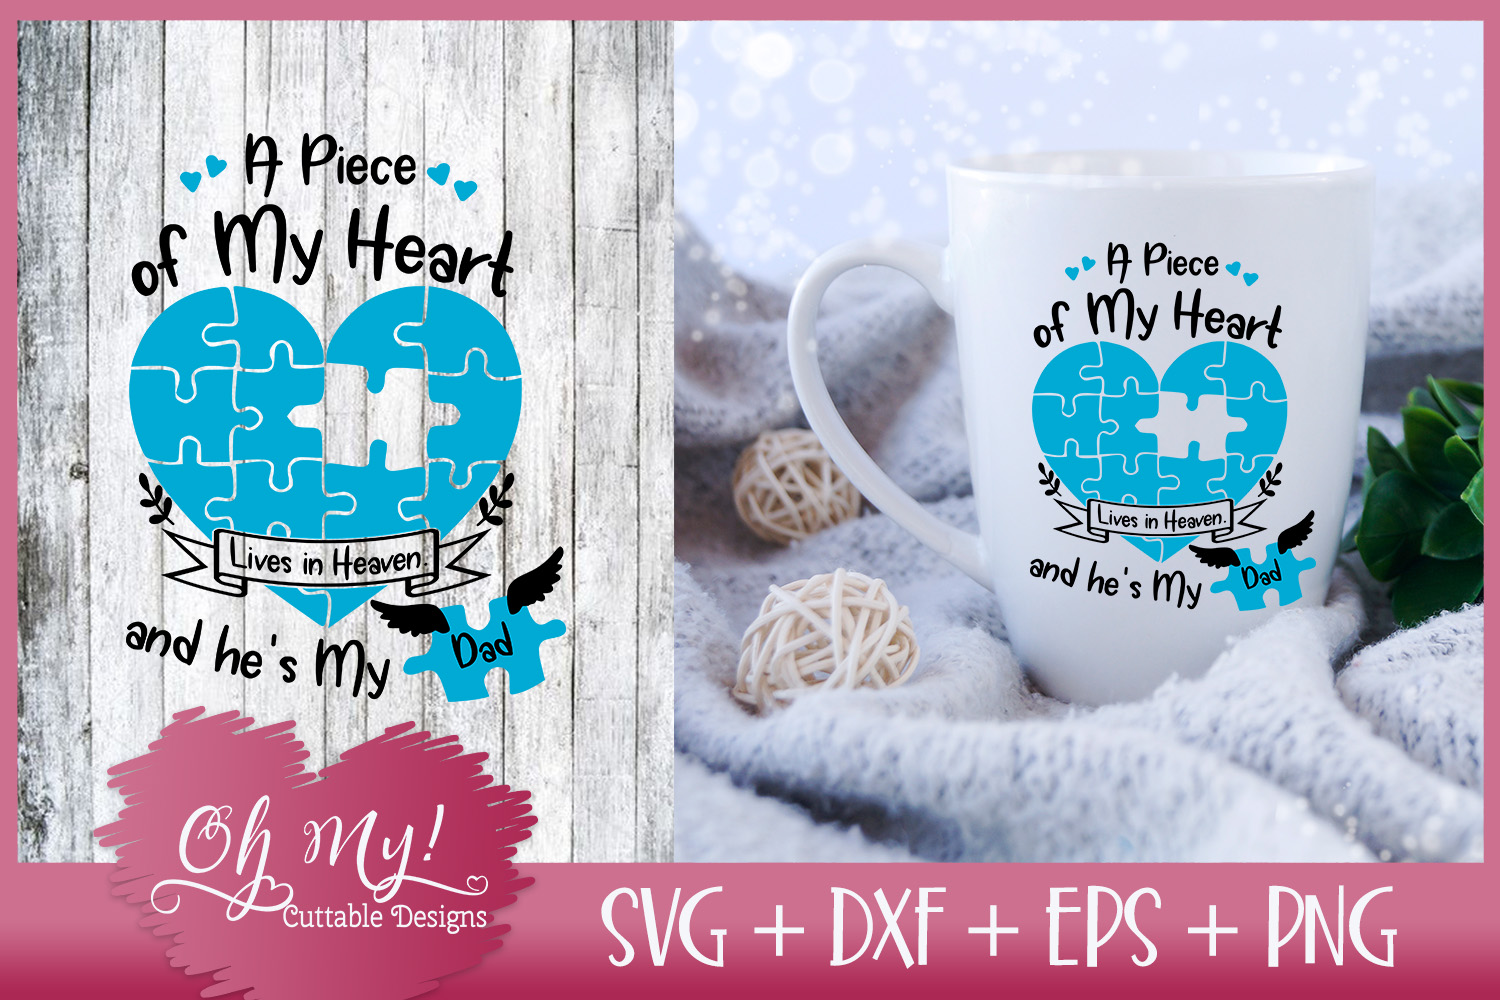 Piece of My Heart Lives In Heaven - Dad - SVG EPS DXF PNG example image 1